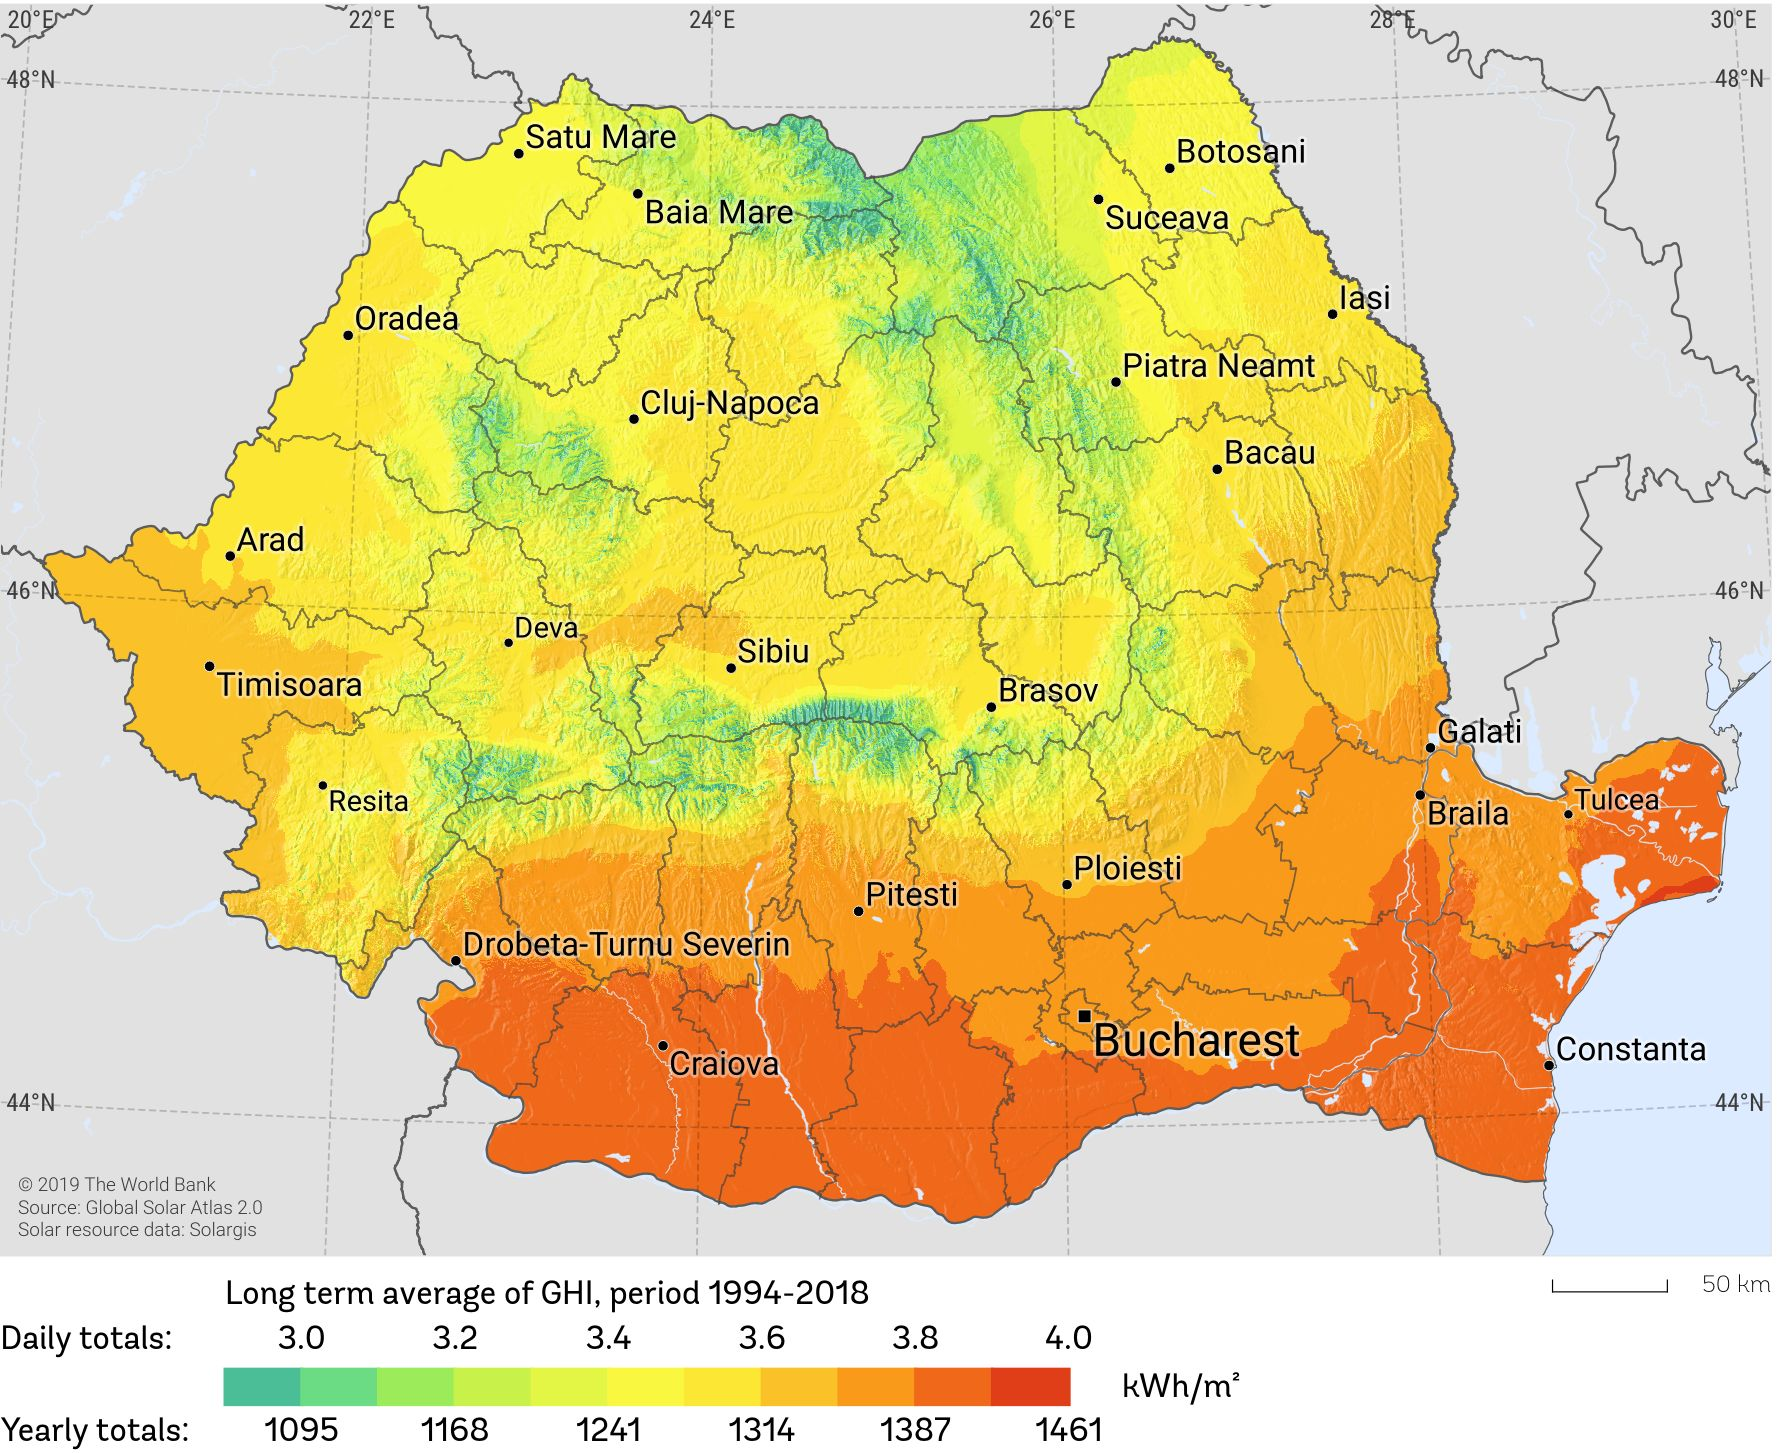 Romania Solar Resource Map 2019 Reduced JPEG